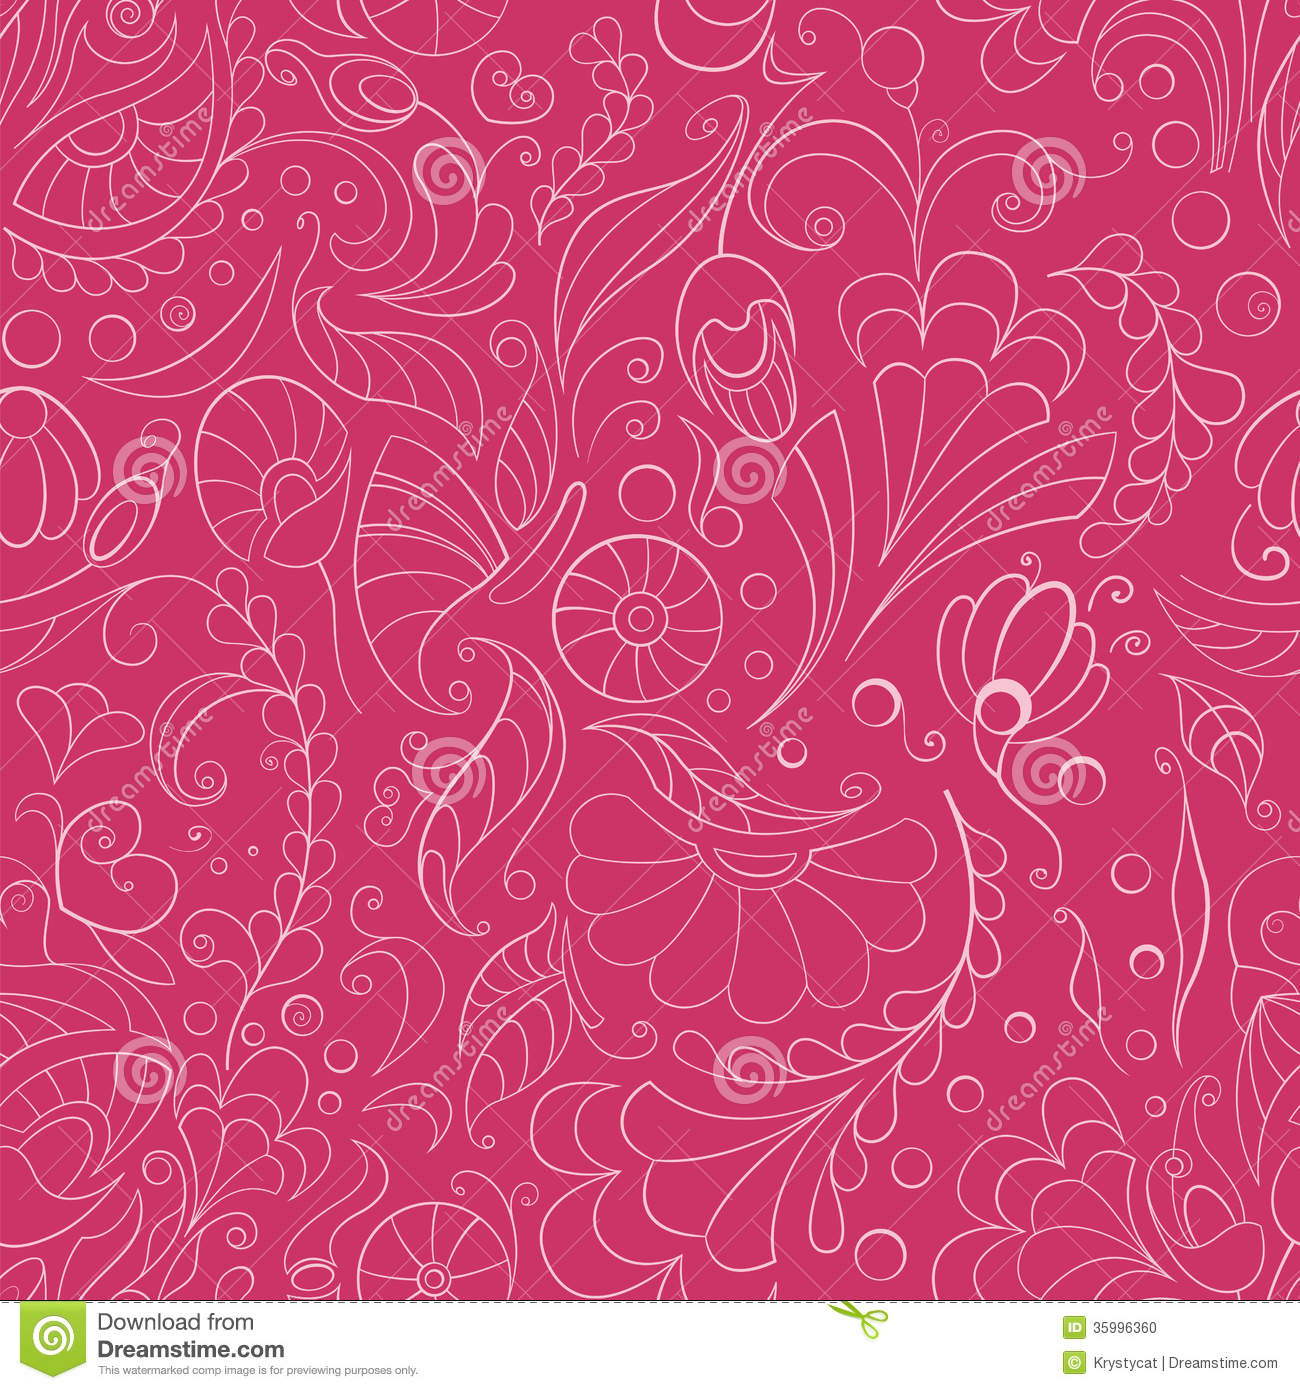 pink floral background jpg - photo #40